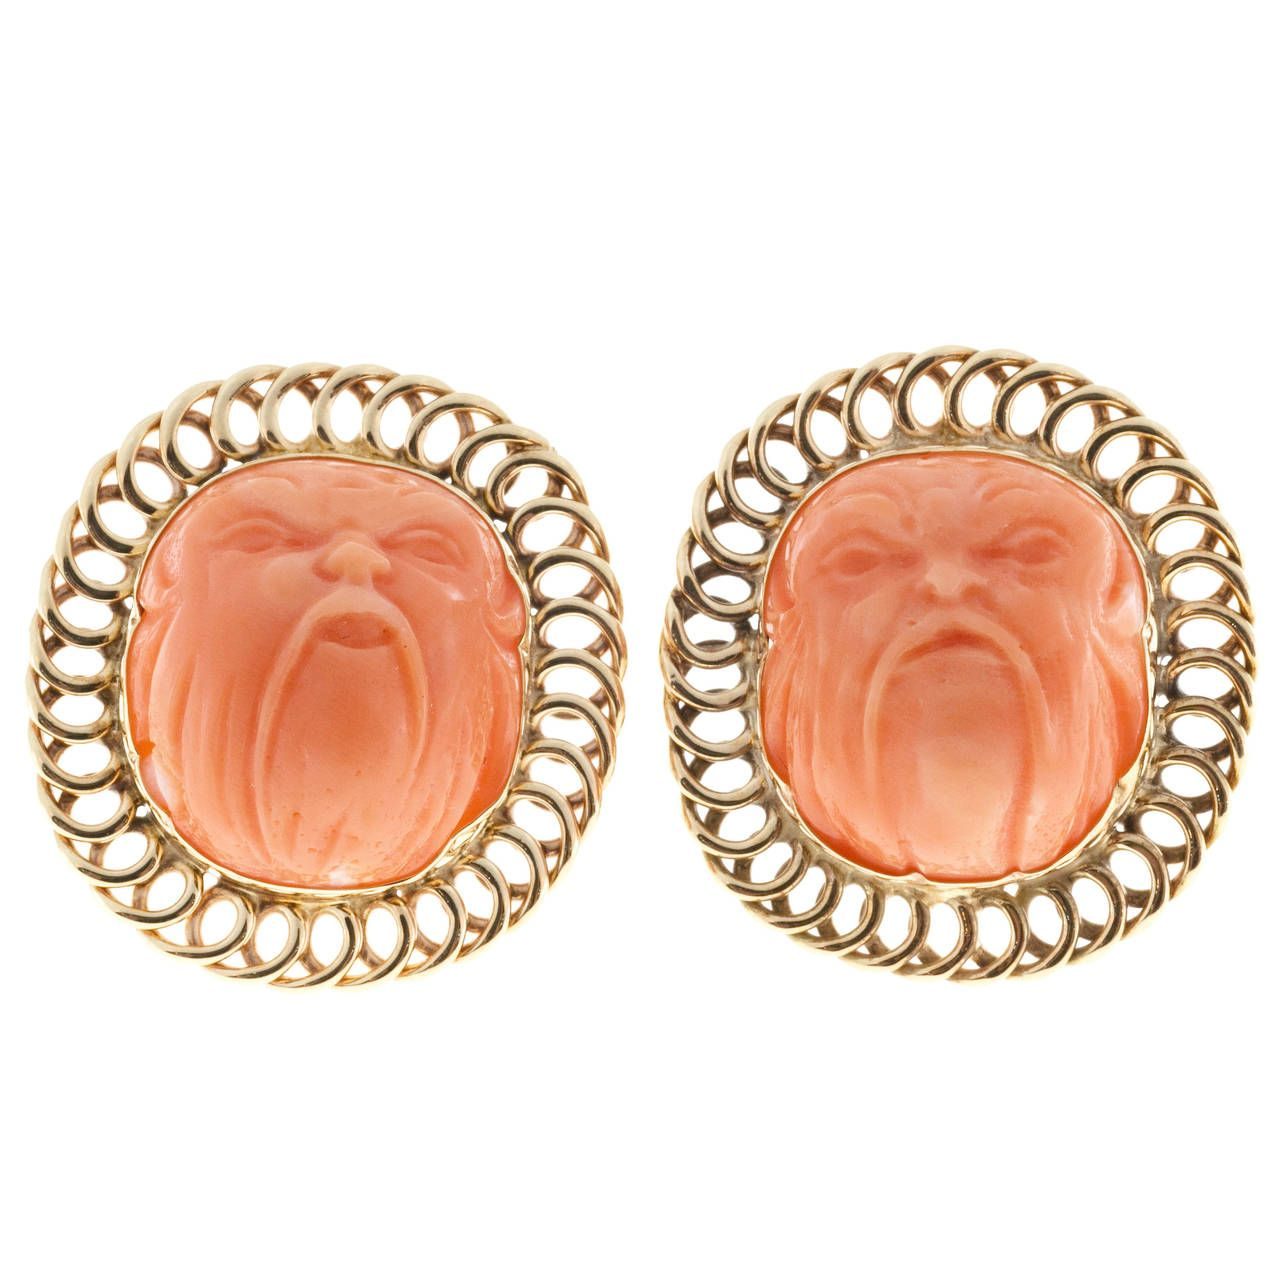 Carved Angel Skin Coral Gold Ear Clips | From a unique collection of vintage clip-on earrings at https://www.1stdibs.com/jewelry/earrings/clip-on-earrings/